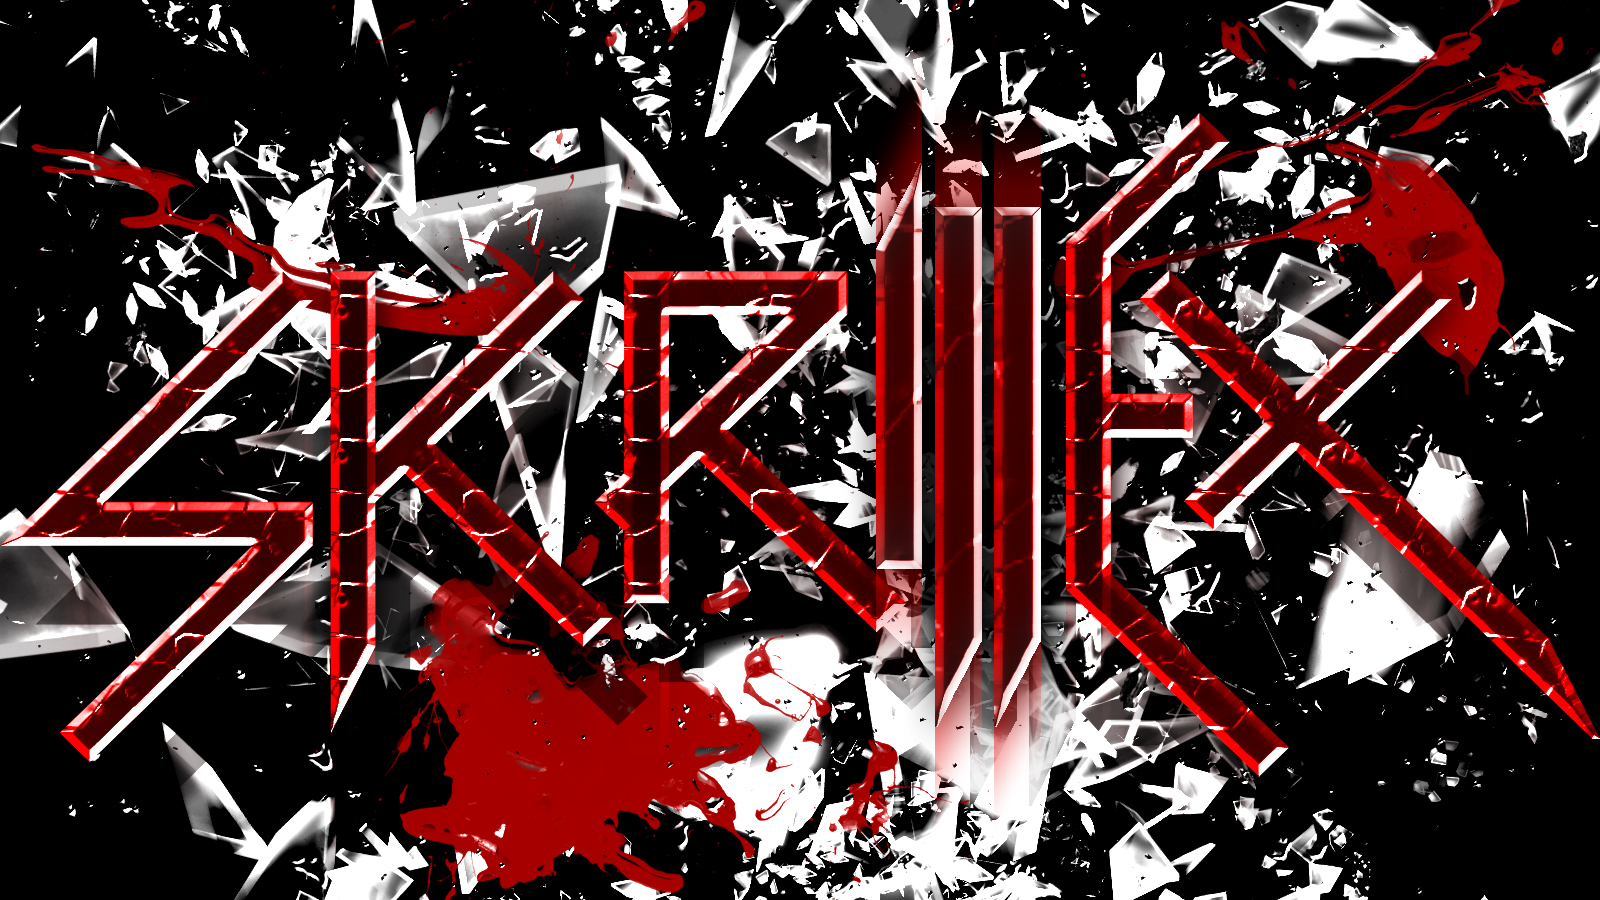 Full HD p Skrillex Wallpapers HD, Desktop Backgrounds 1600x900